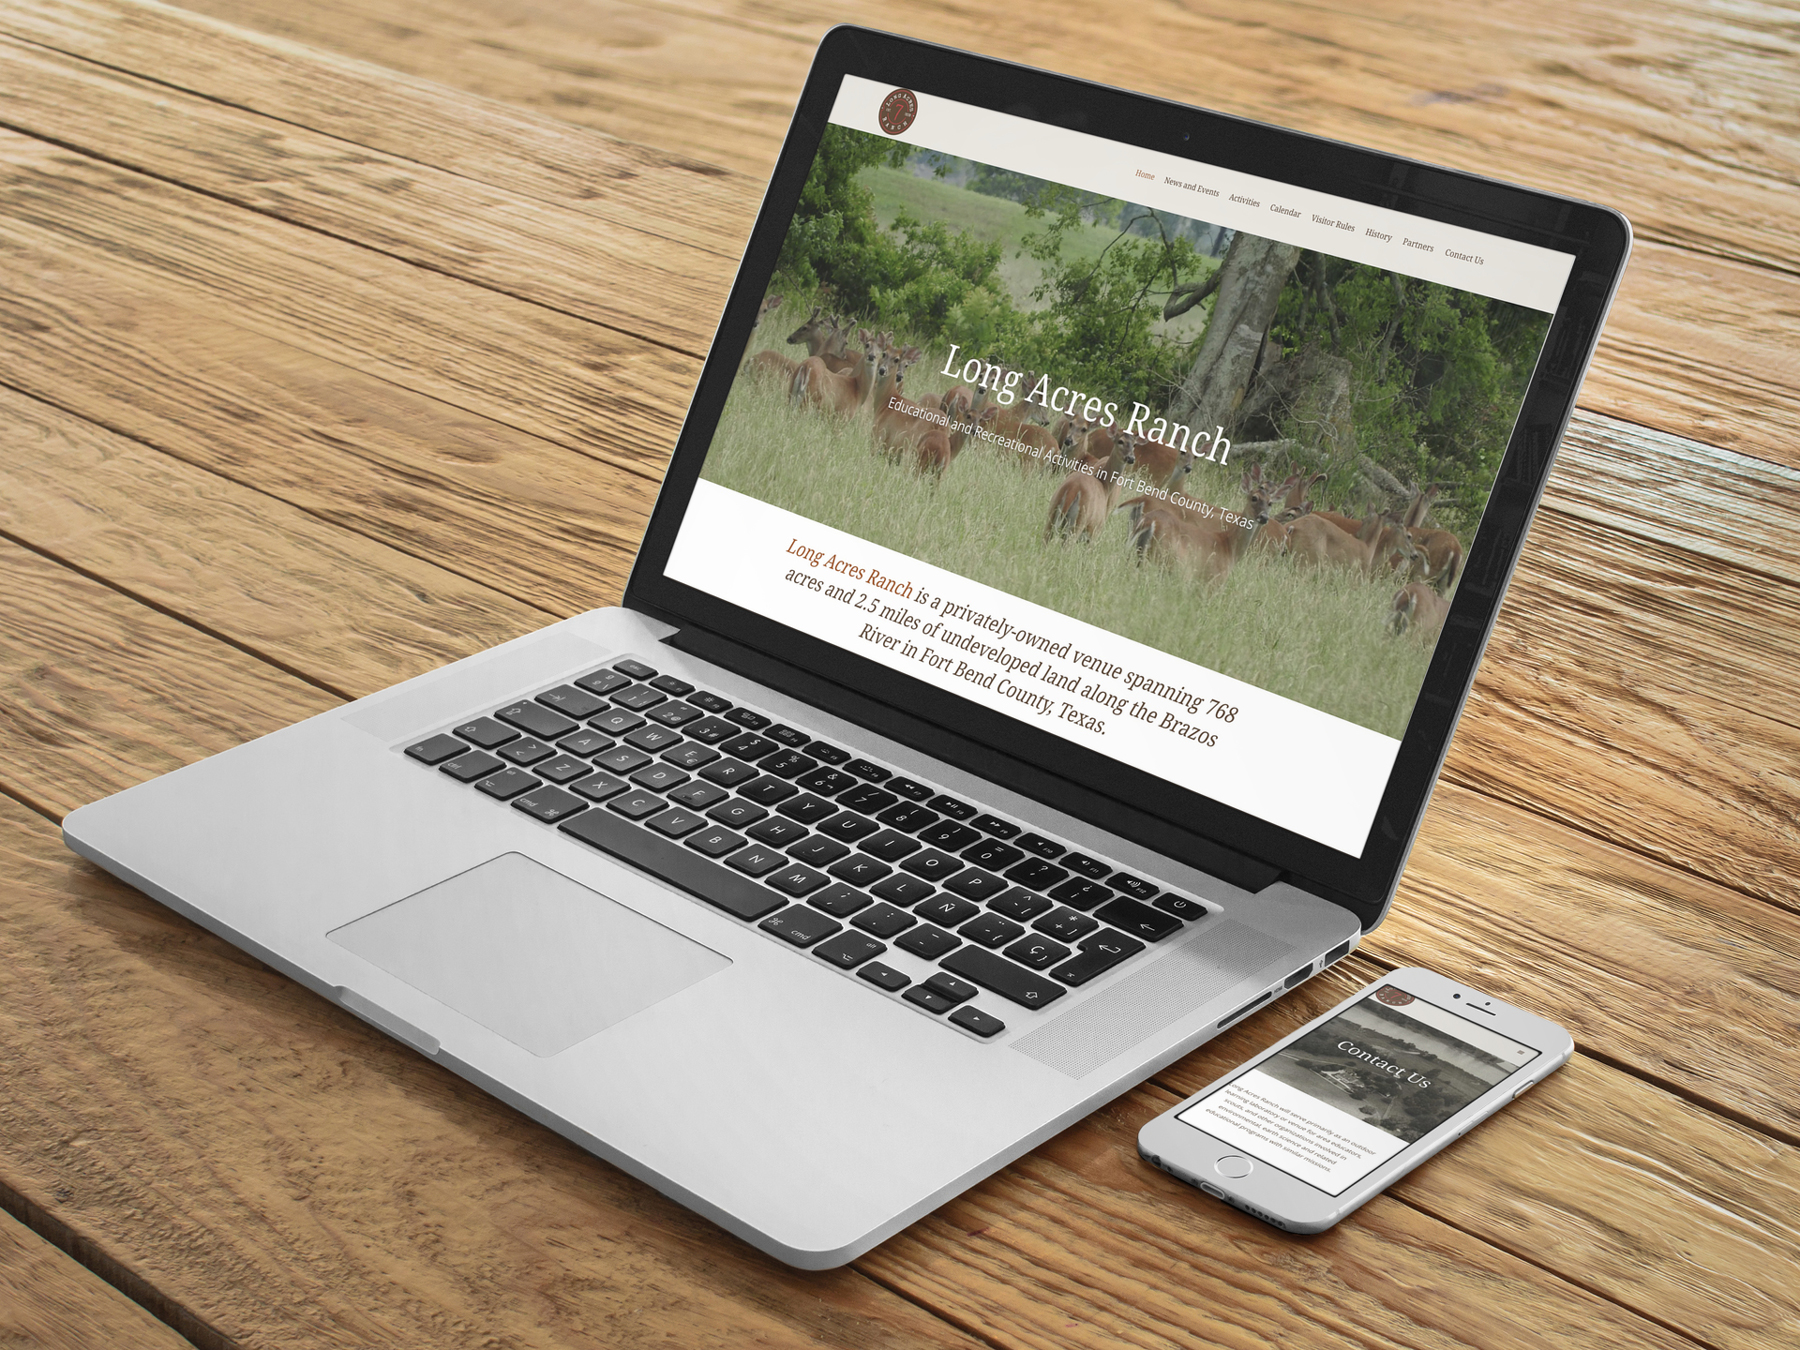 Long Acres Ranch Website Design